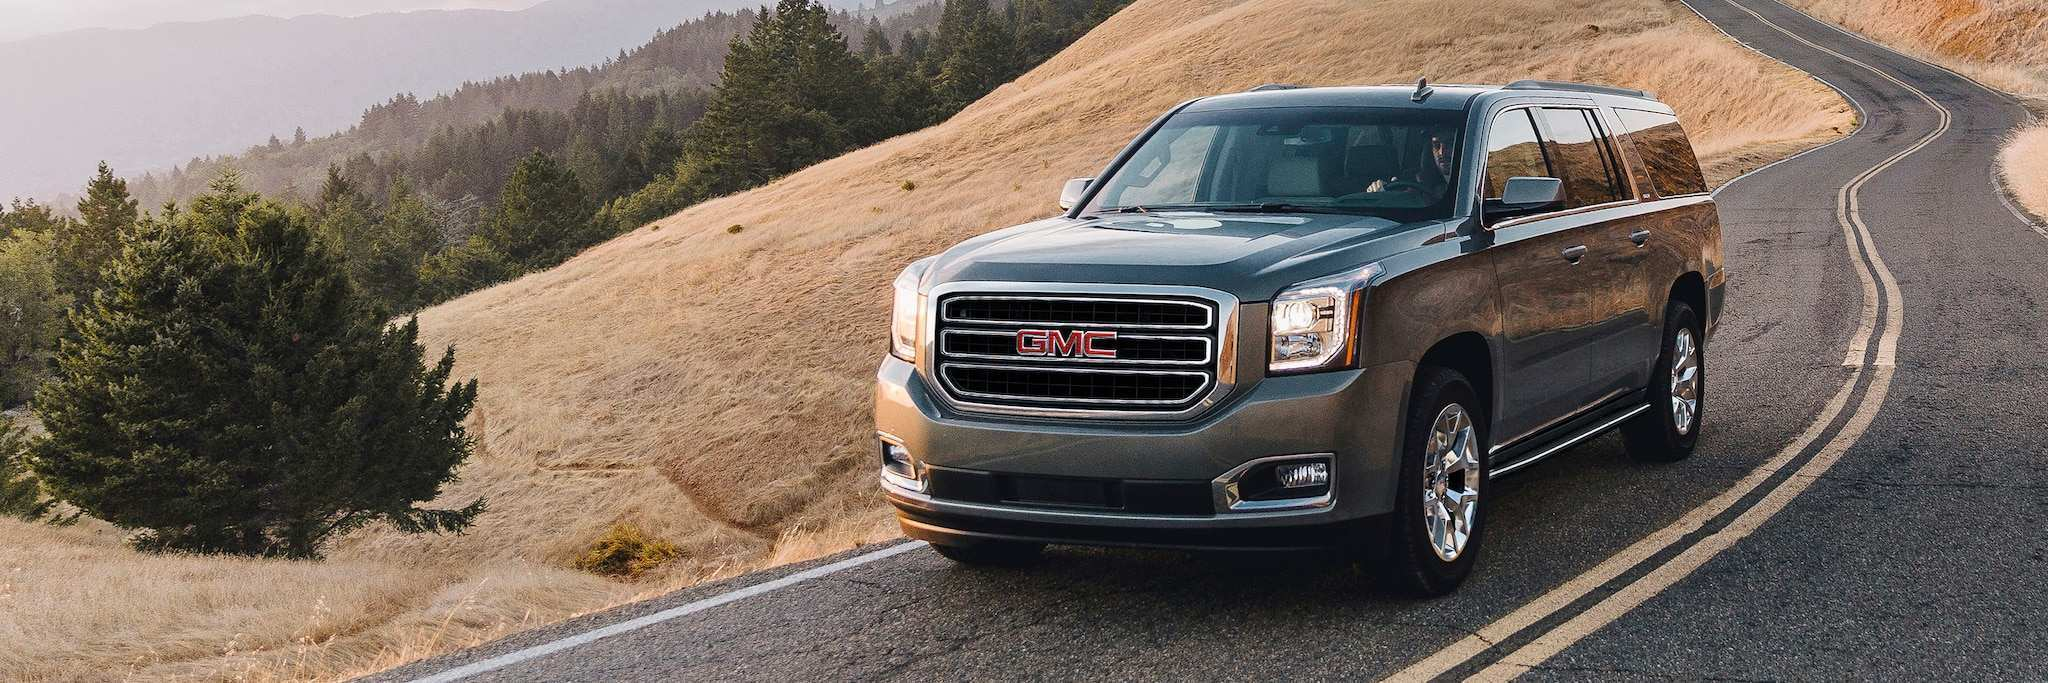 60 A 2020 Gmc Yukon Denali Interior Performance